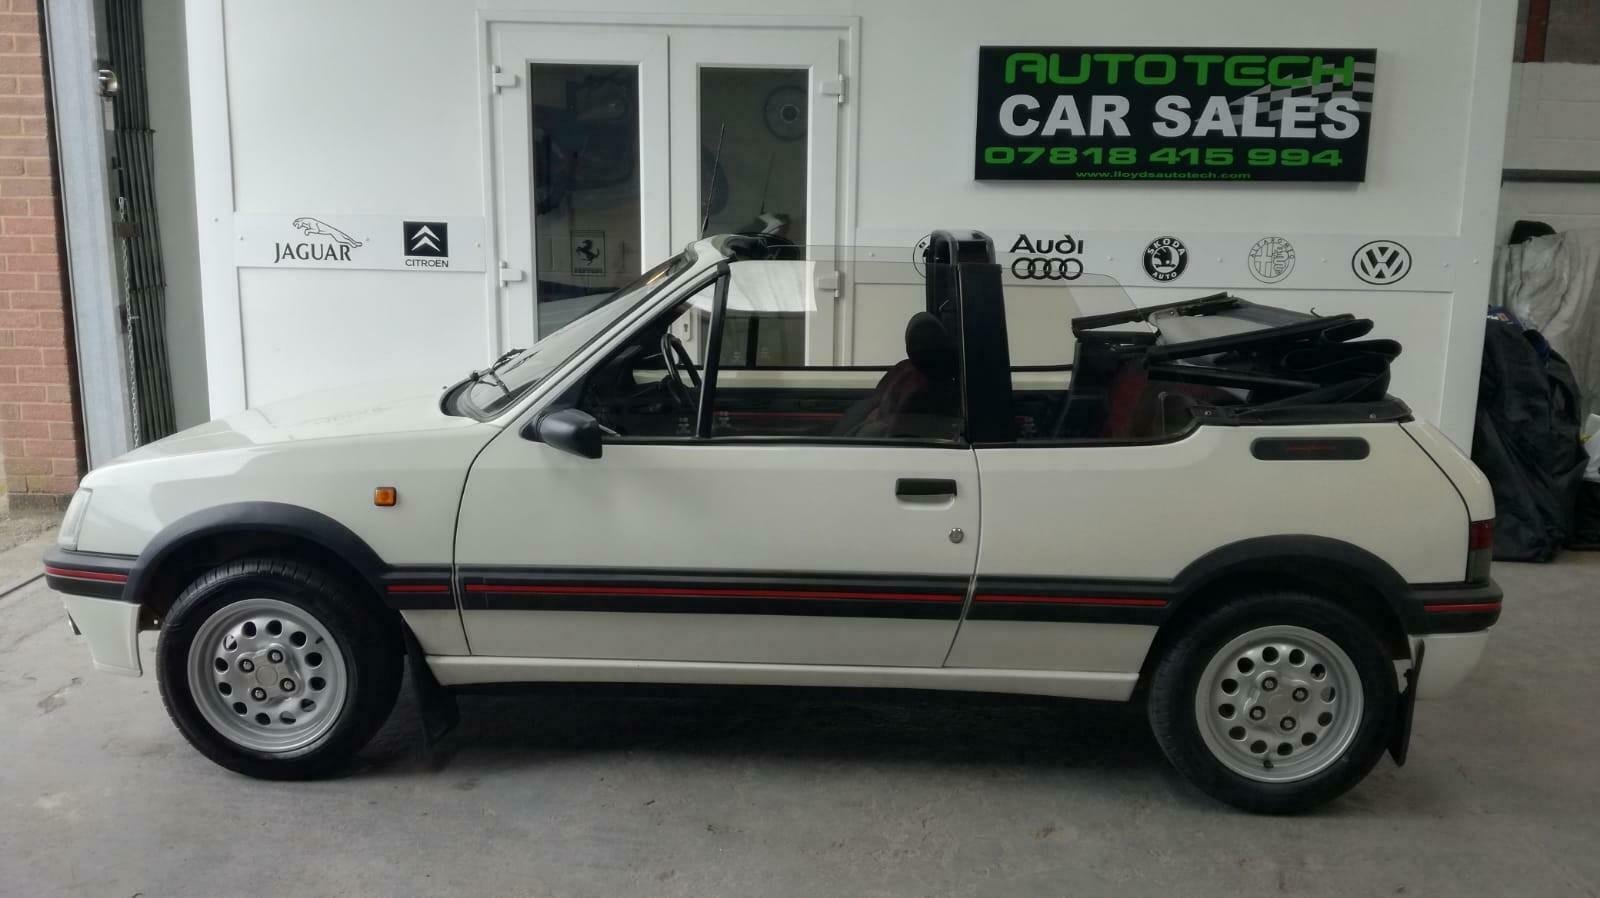 Peugeot 205 CTI 1.6  CABRIOLET 1992 For Sale (picture 1 of 6)